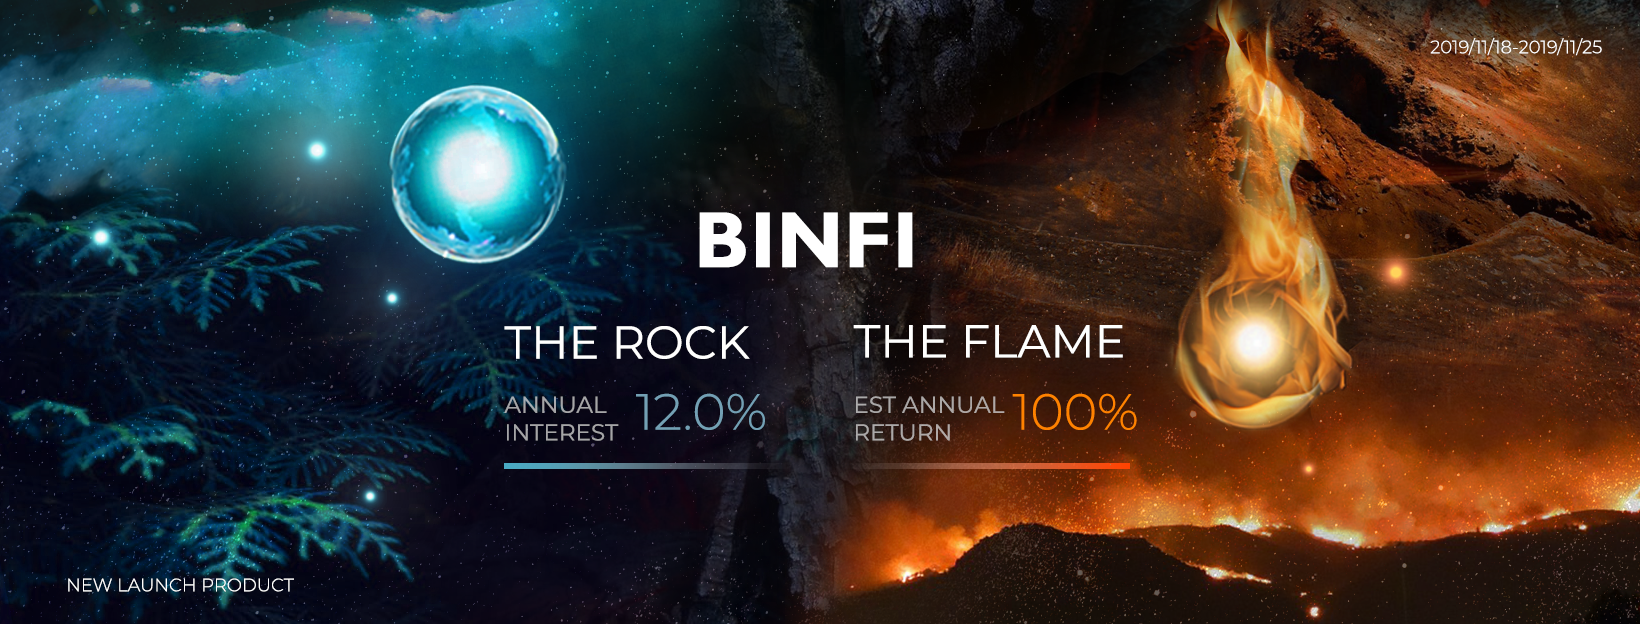 12% annual interest! Bincentive combines quant trading and